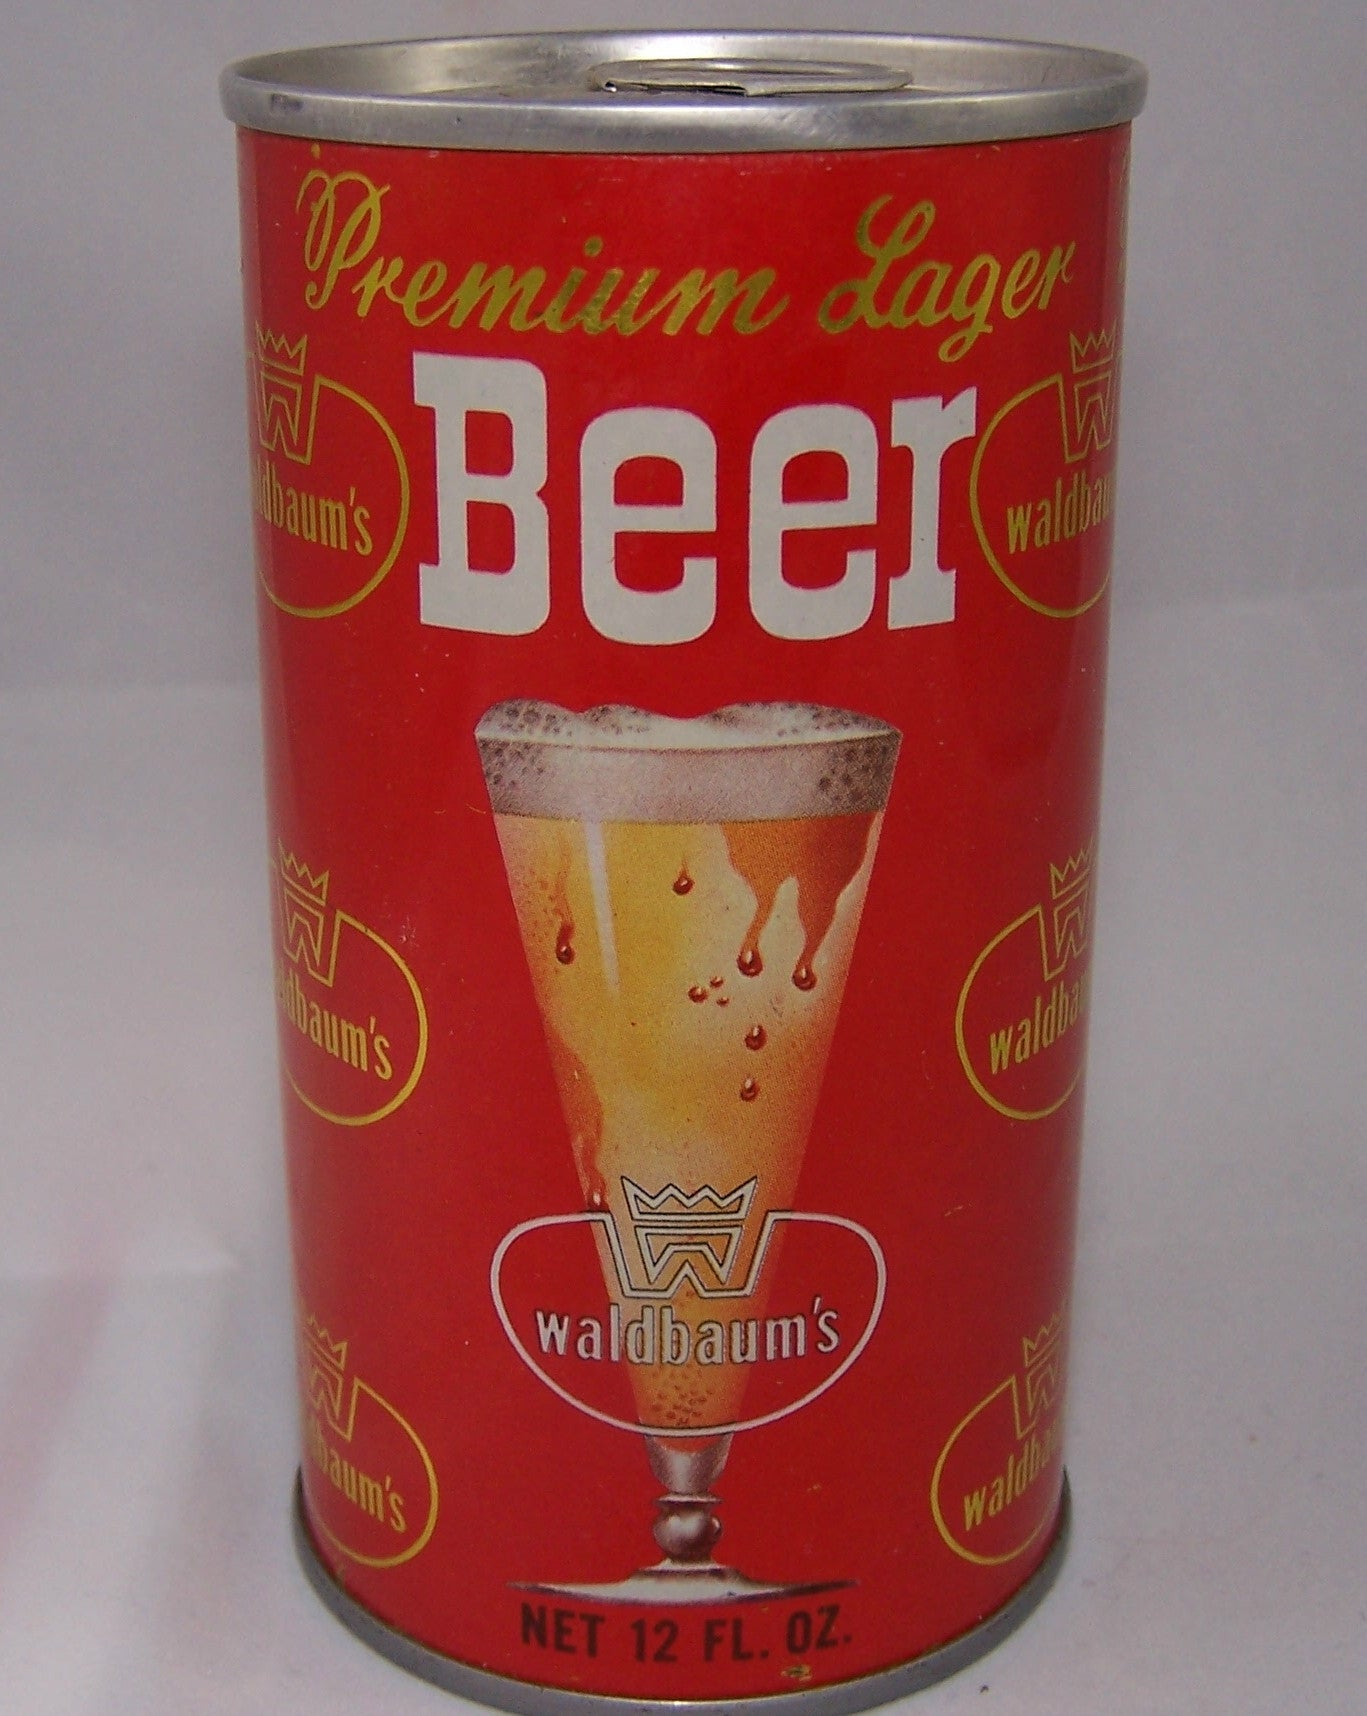 Waldbaum's Premium Lager Beer, USBC II 133-23, Grade A1+ Sold on 4/12/15